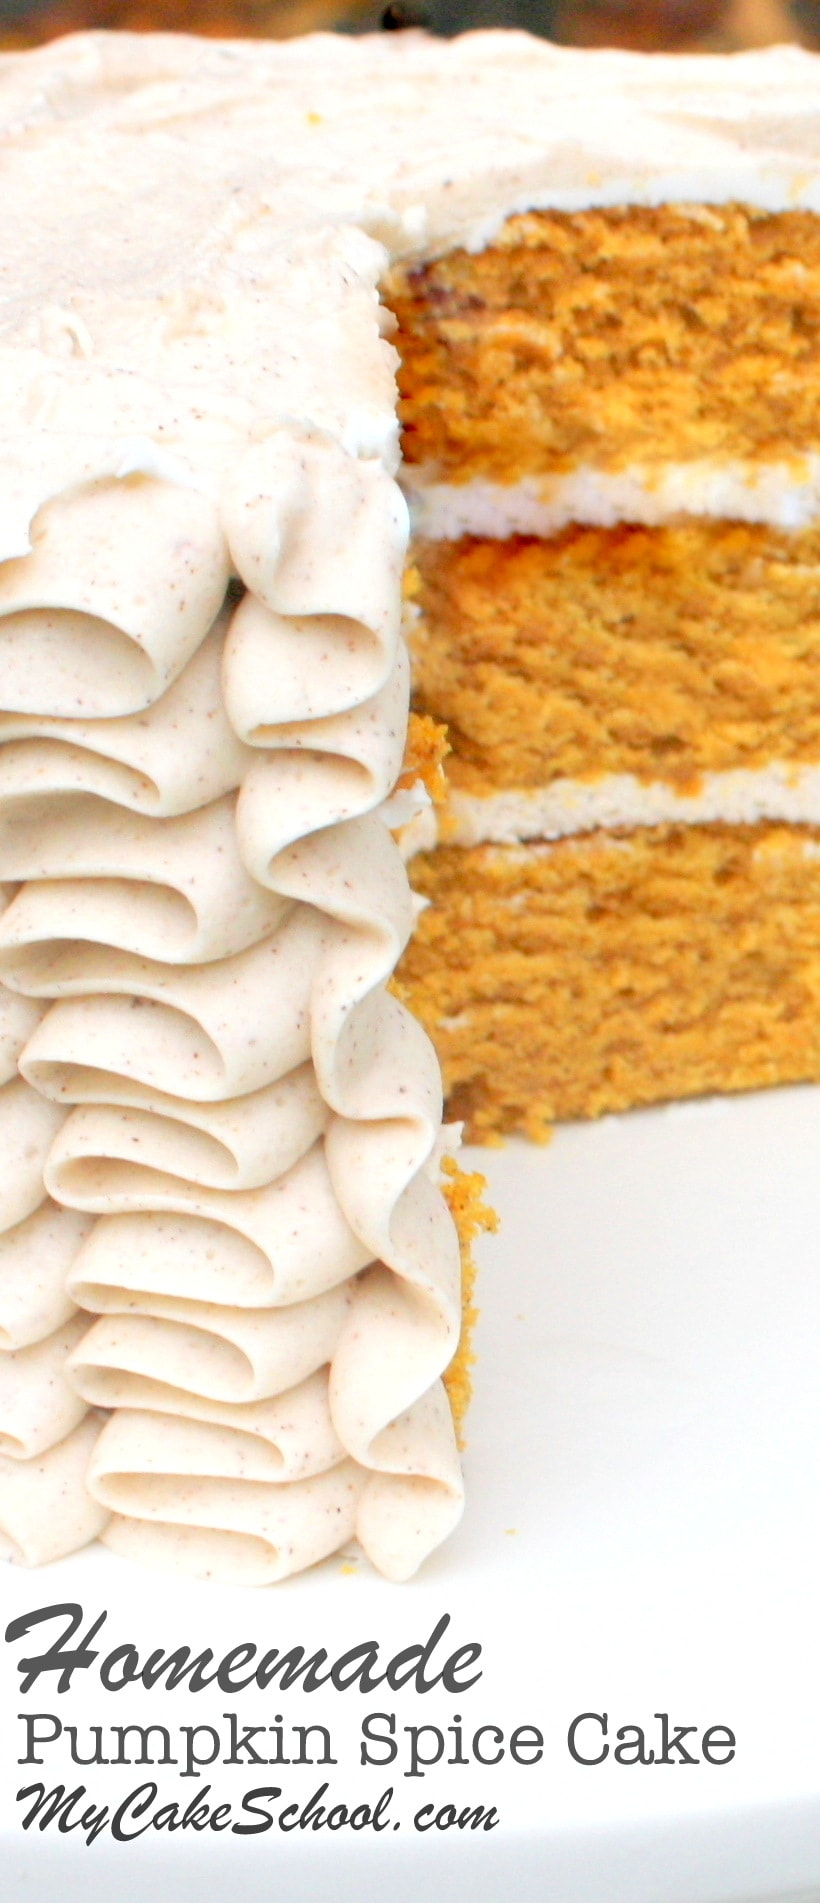 The most AMAZING Pumpkin Spice Cake Recipe from scratch! You'll love this homemade cake for fall celebrations! My Cake School recipe.